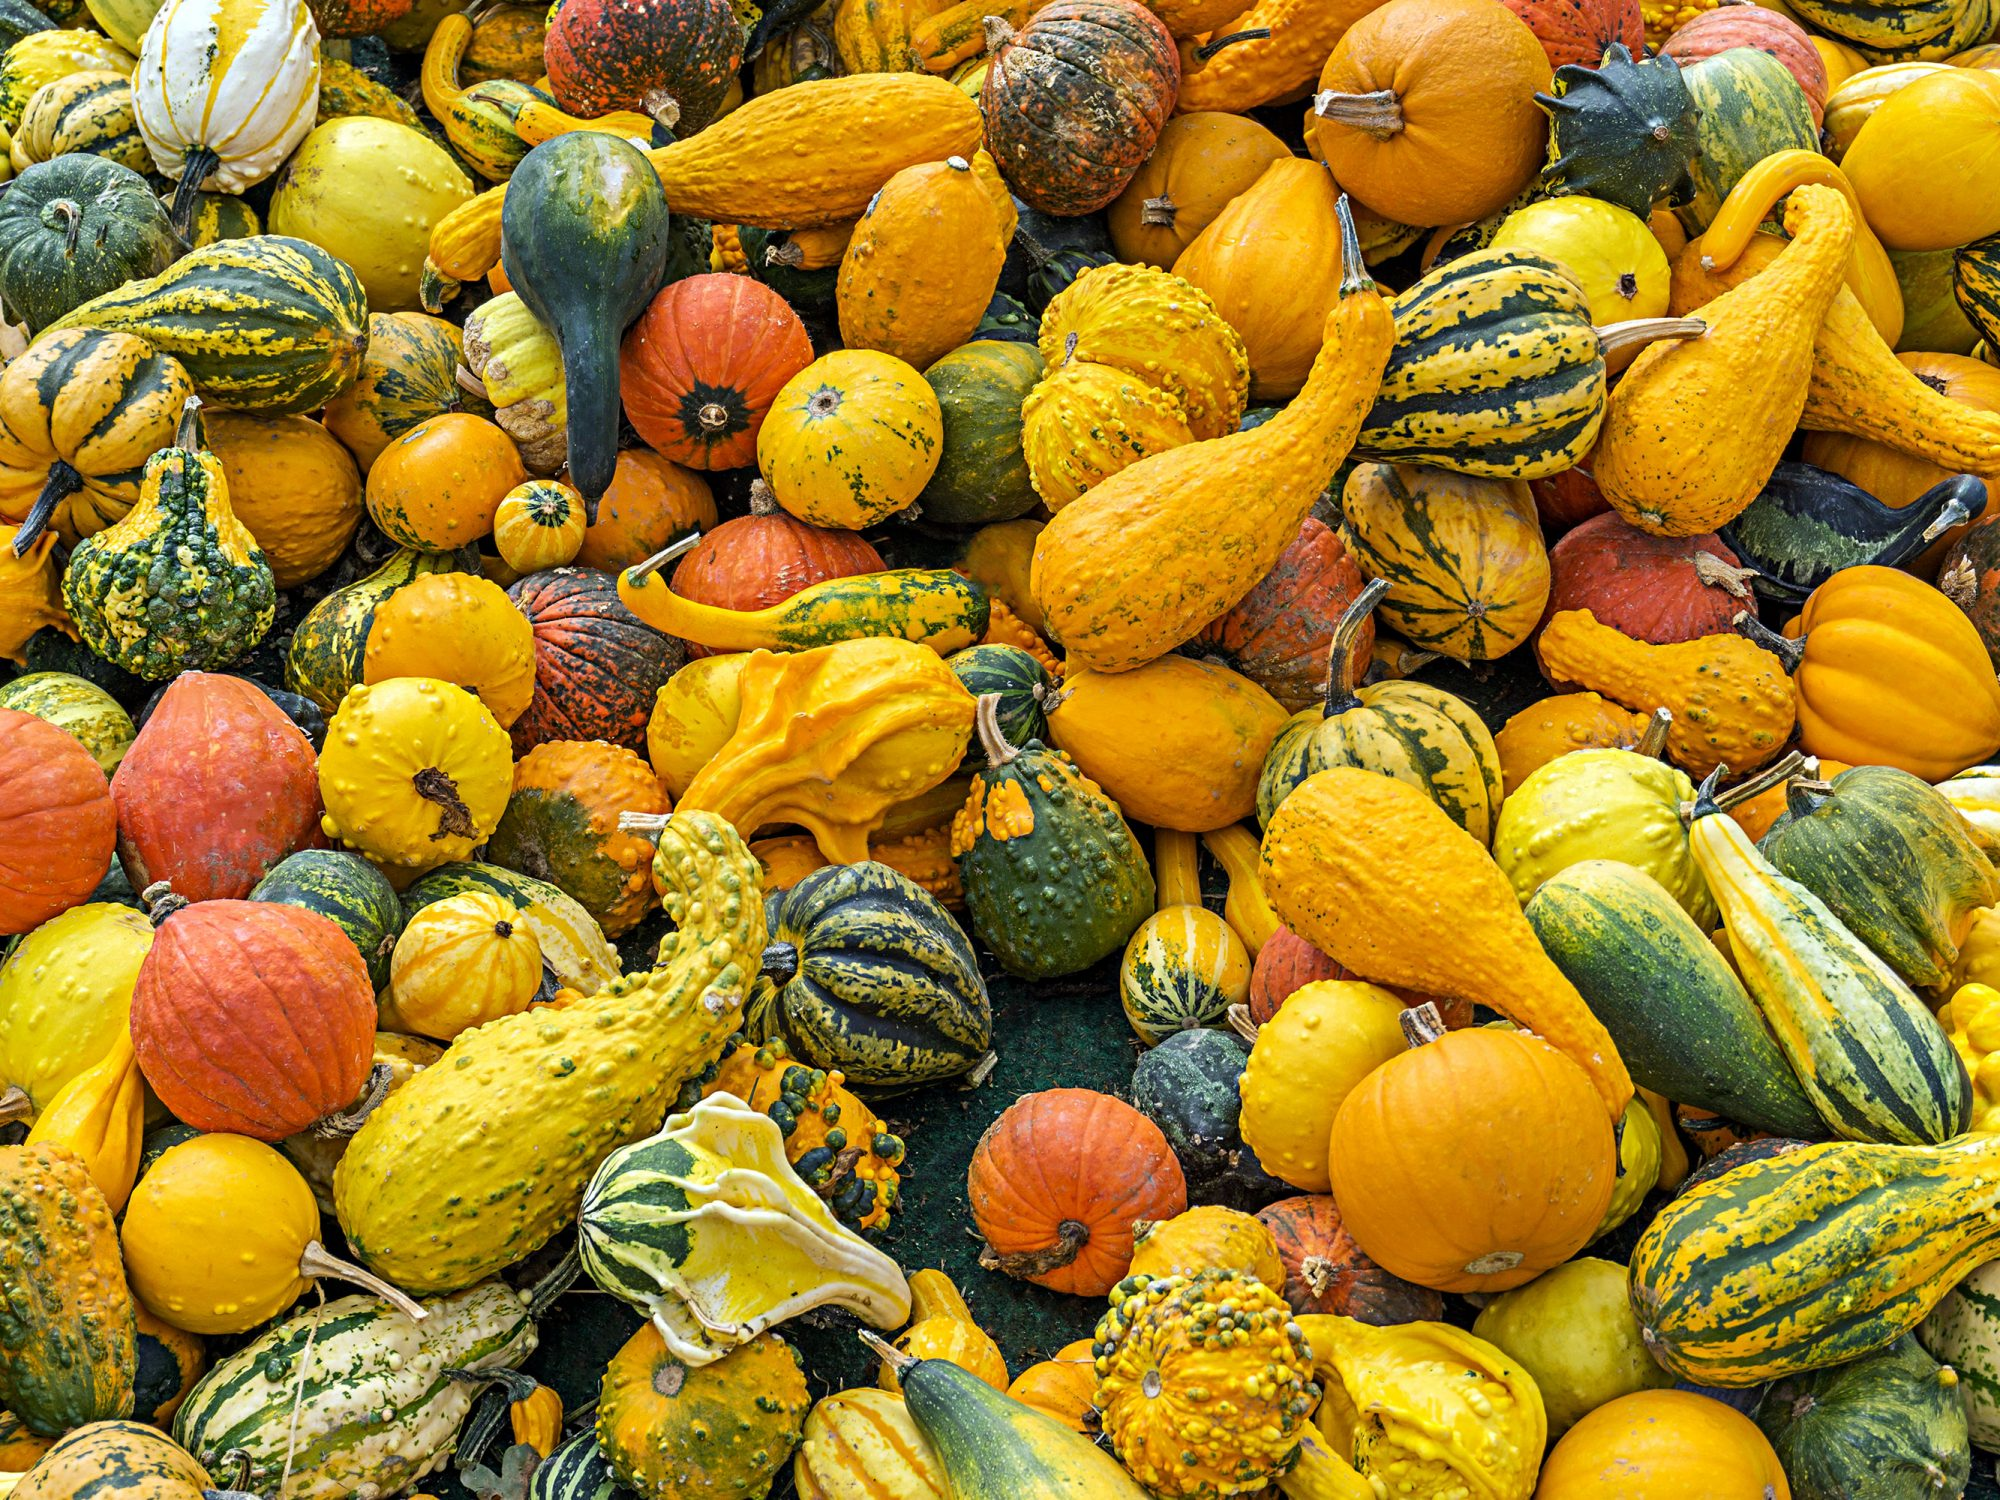 Can You Eat The Skin on All Types of Squash?